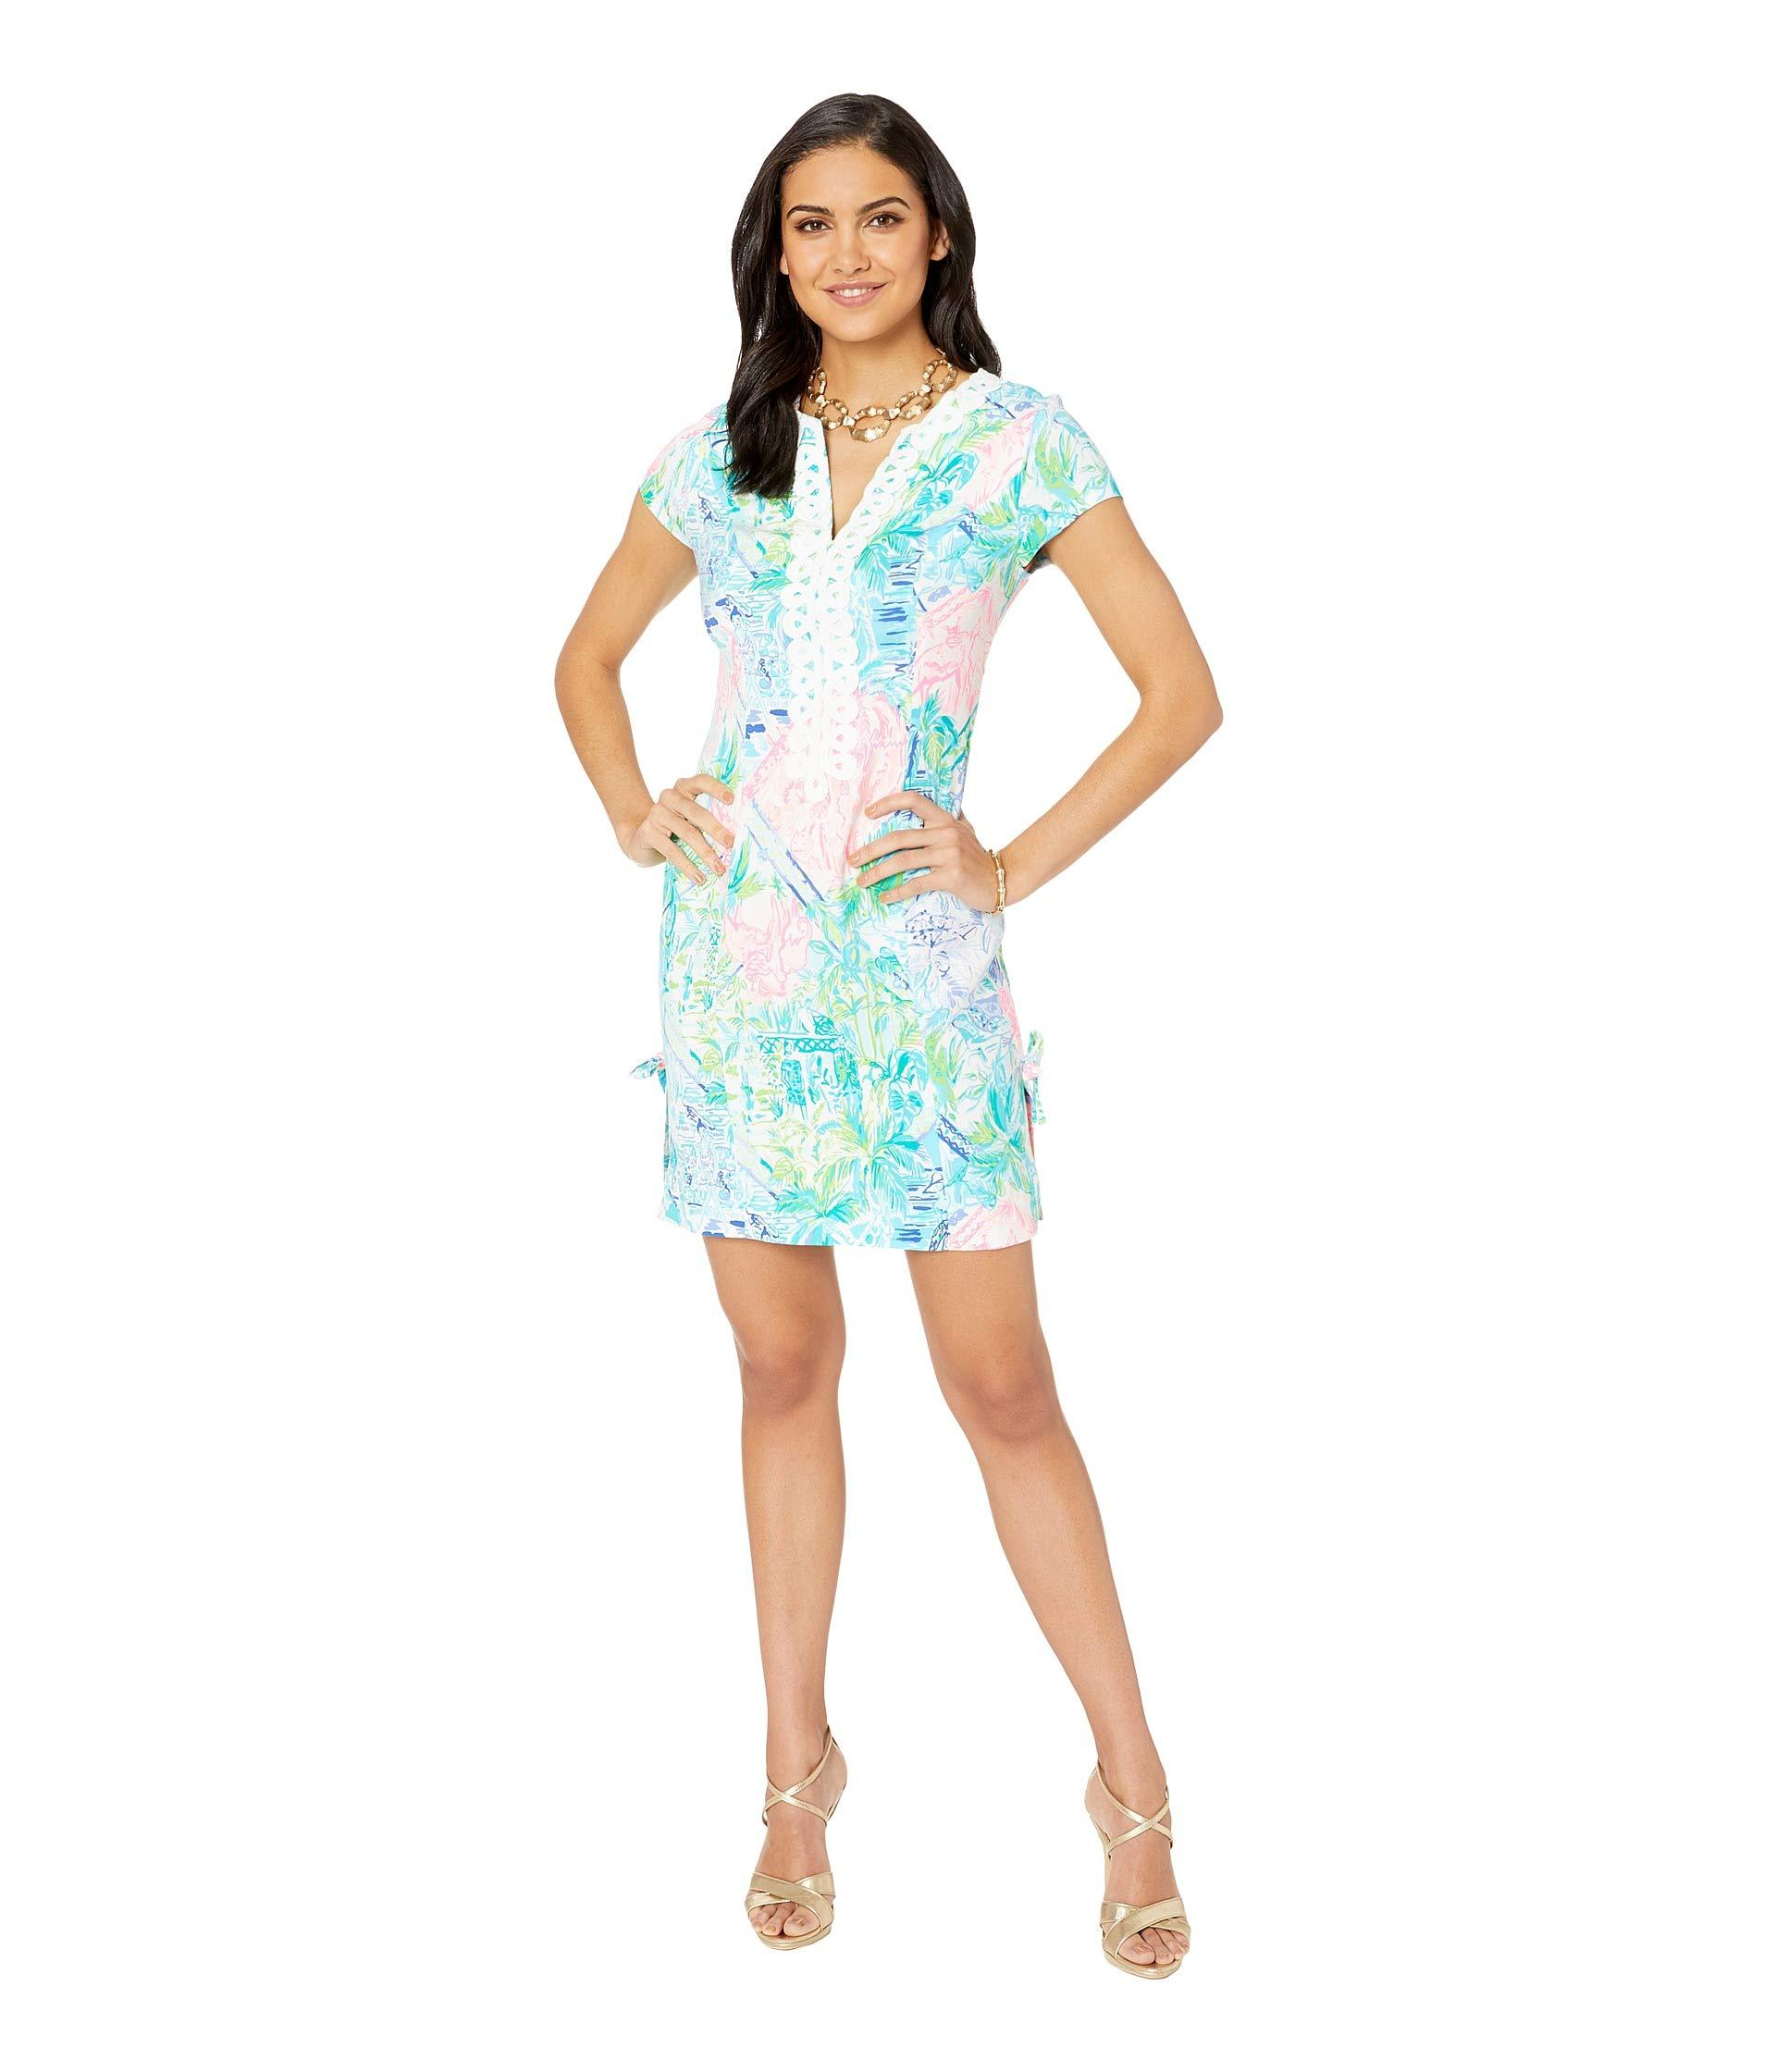 aeb0f482bf01a4 ... Lilly Pulitzer - Blue Casidy Stretch Shift Dress - Lyst · Visit Zappos.  Tap to visit site